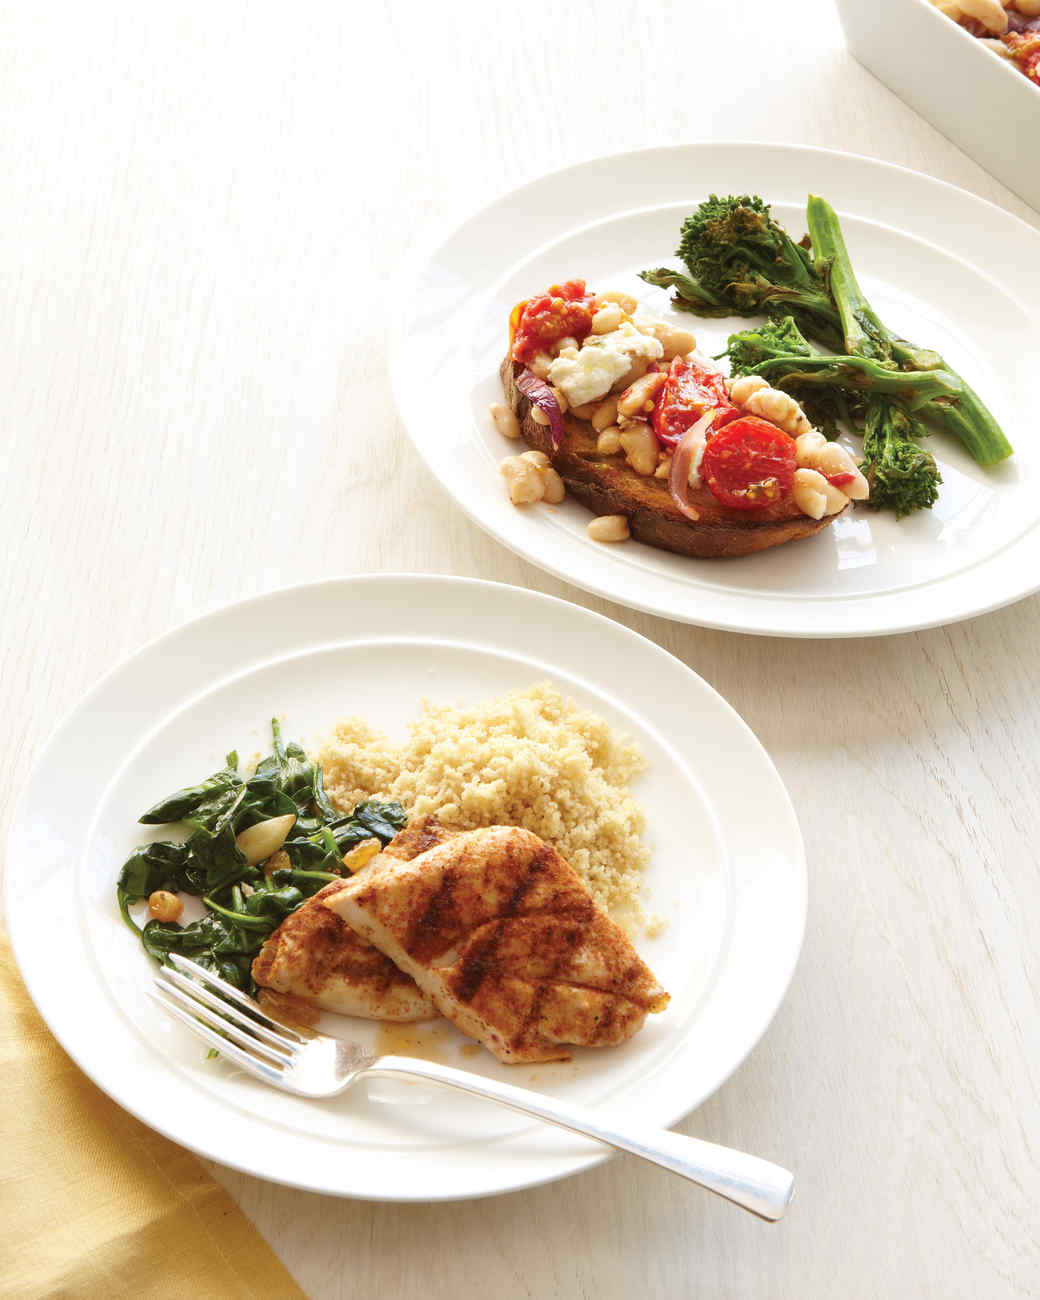 Grilled Chicken with Spinach and Whole-Wheat Couscous